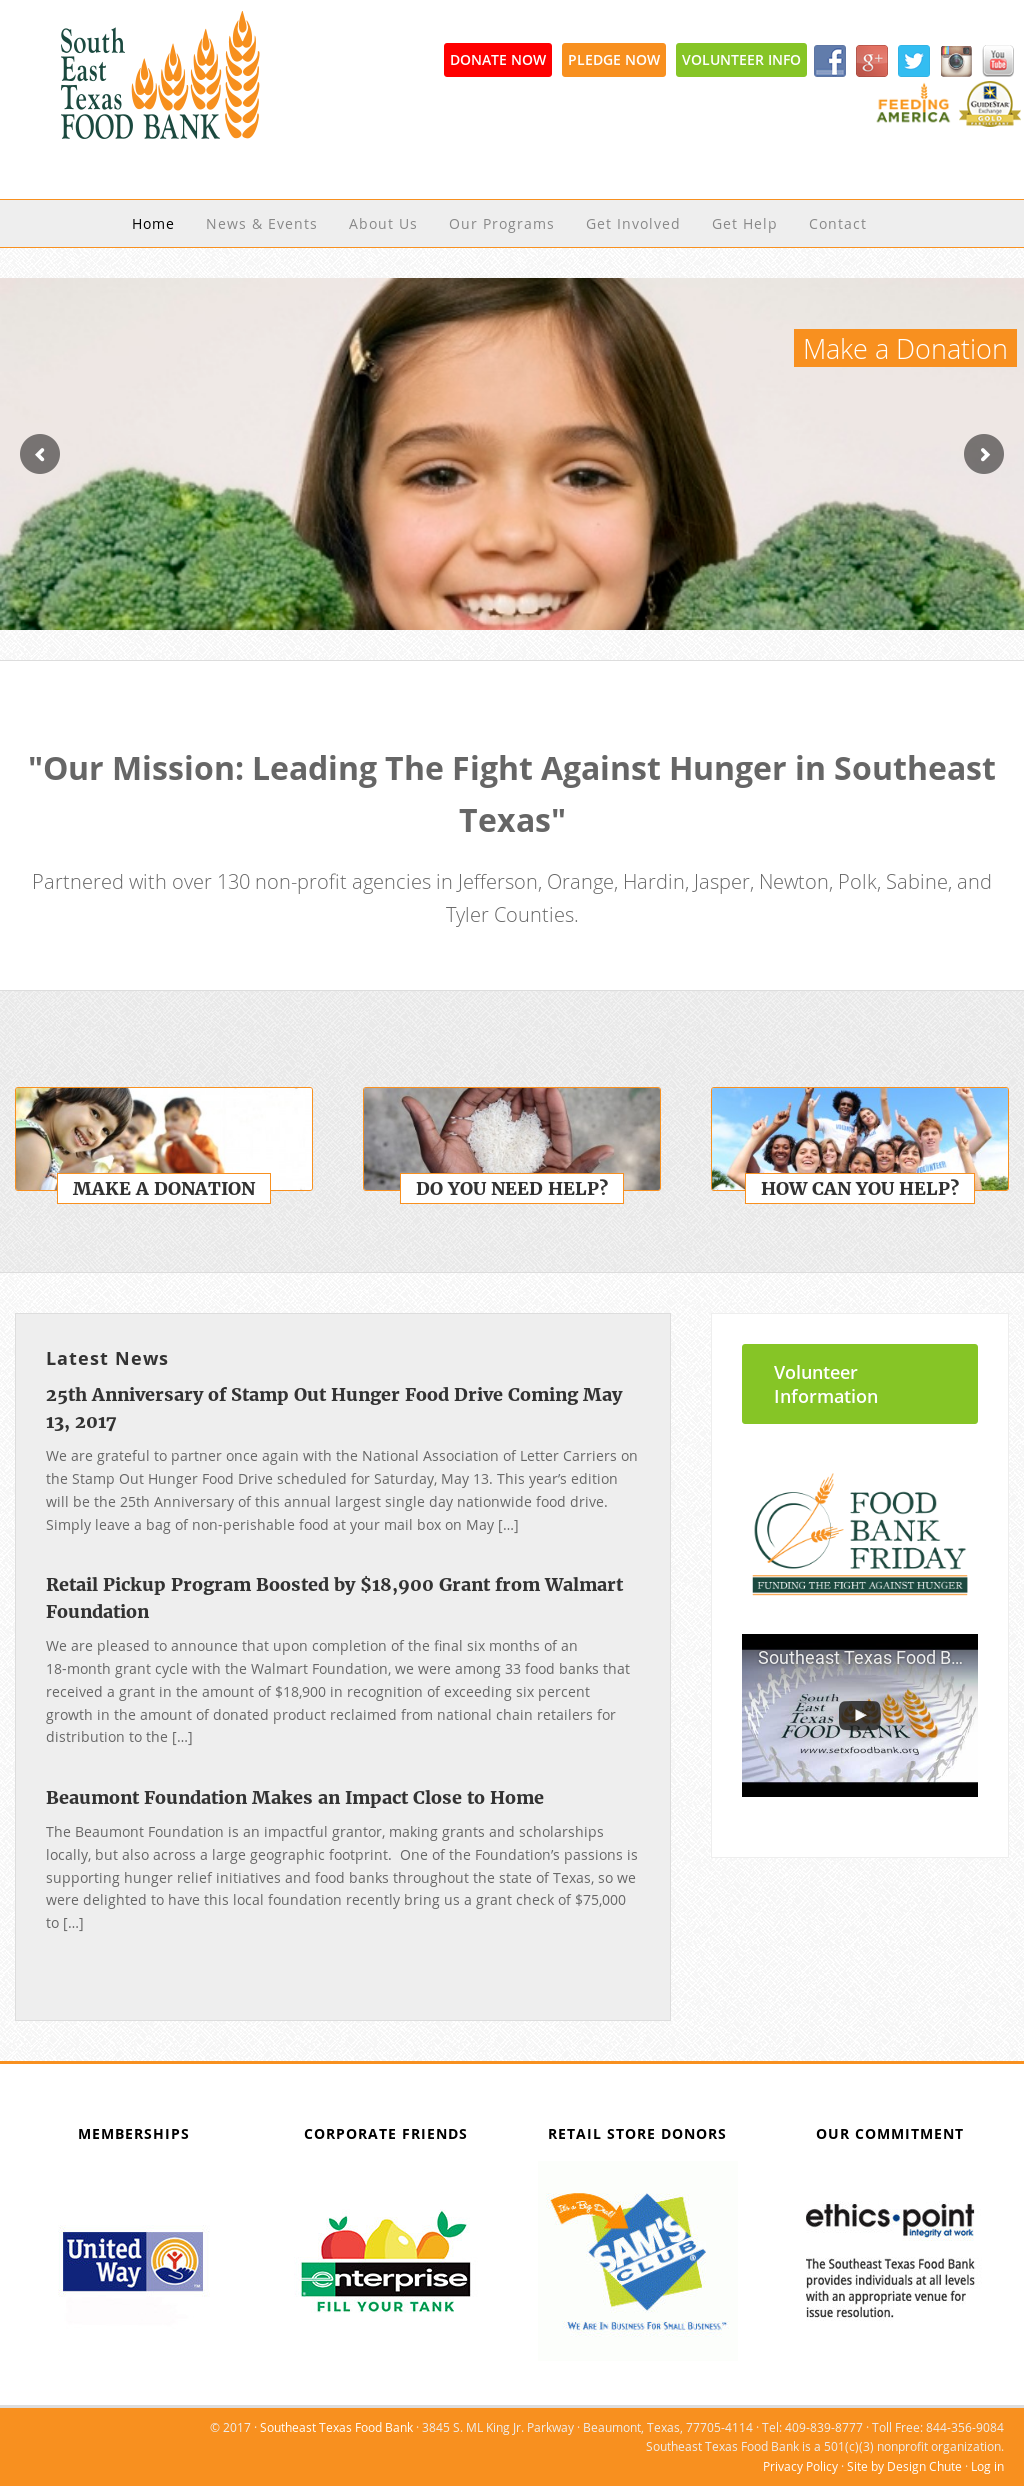 Southeast Texas Food Bank Competitors, Revenue and Employees